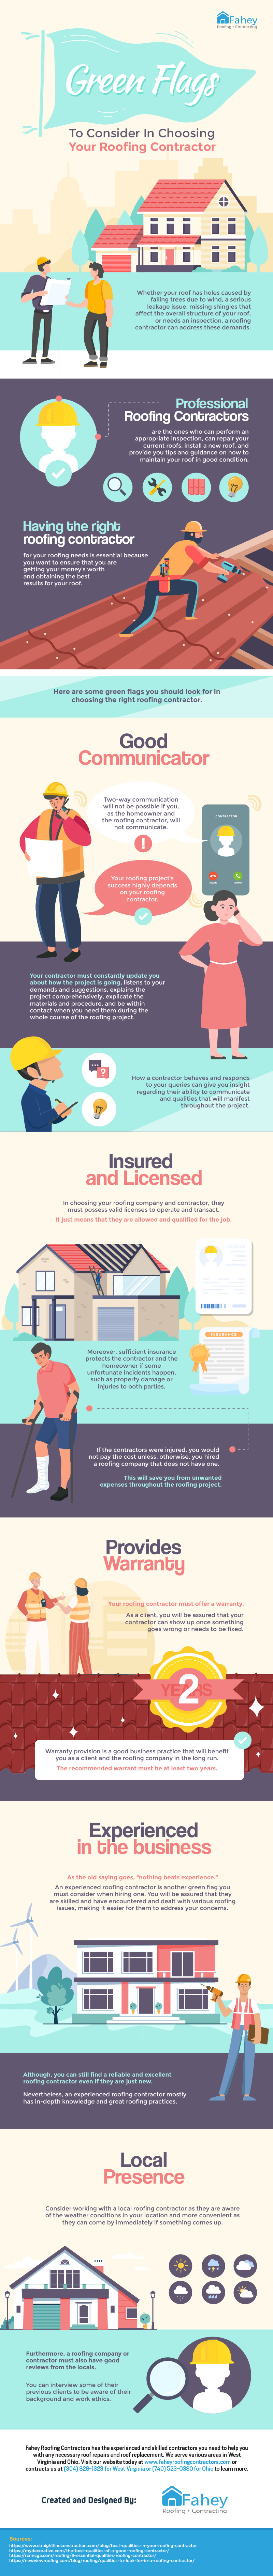 Green-Flags-to-Consider-in-Choosing-Your-Roofing-Contractor-Infographic